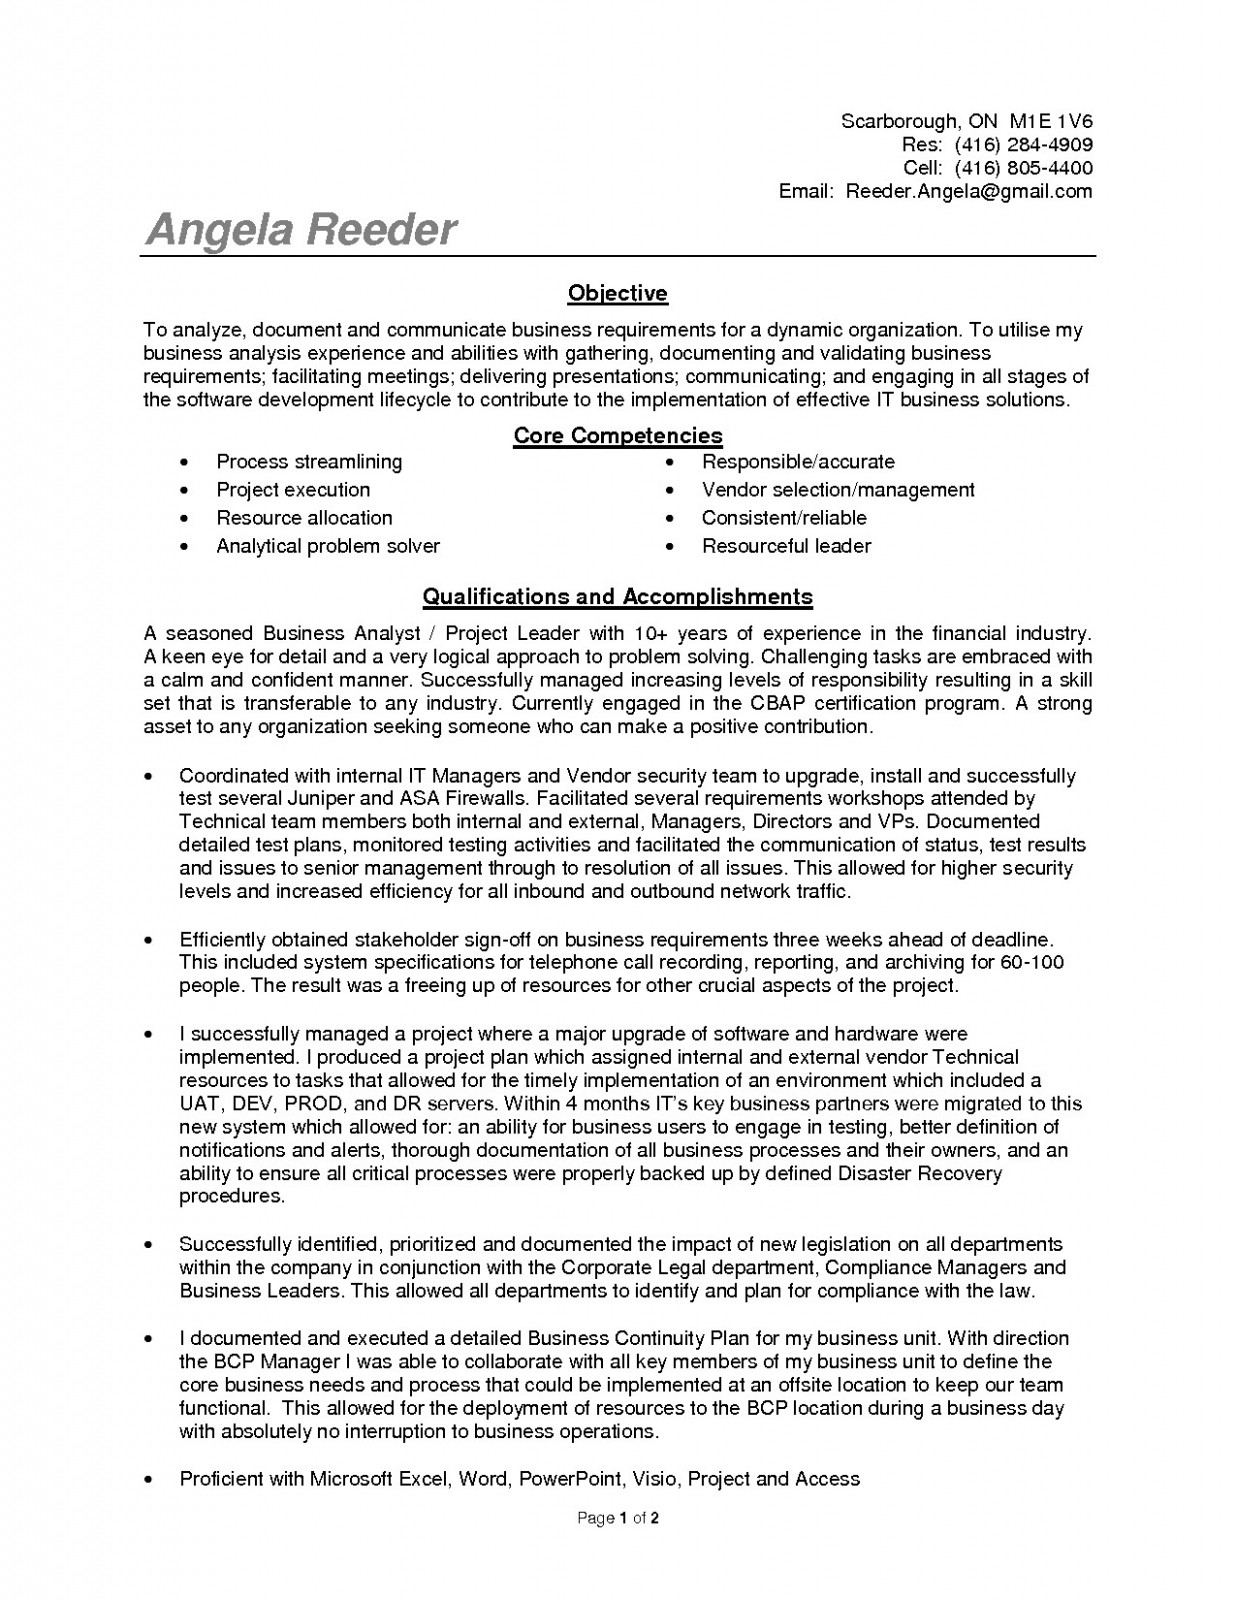 Collaborate Synonym Resume - Collaborate Synonym Resume